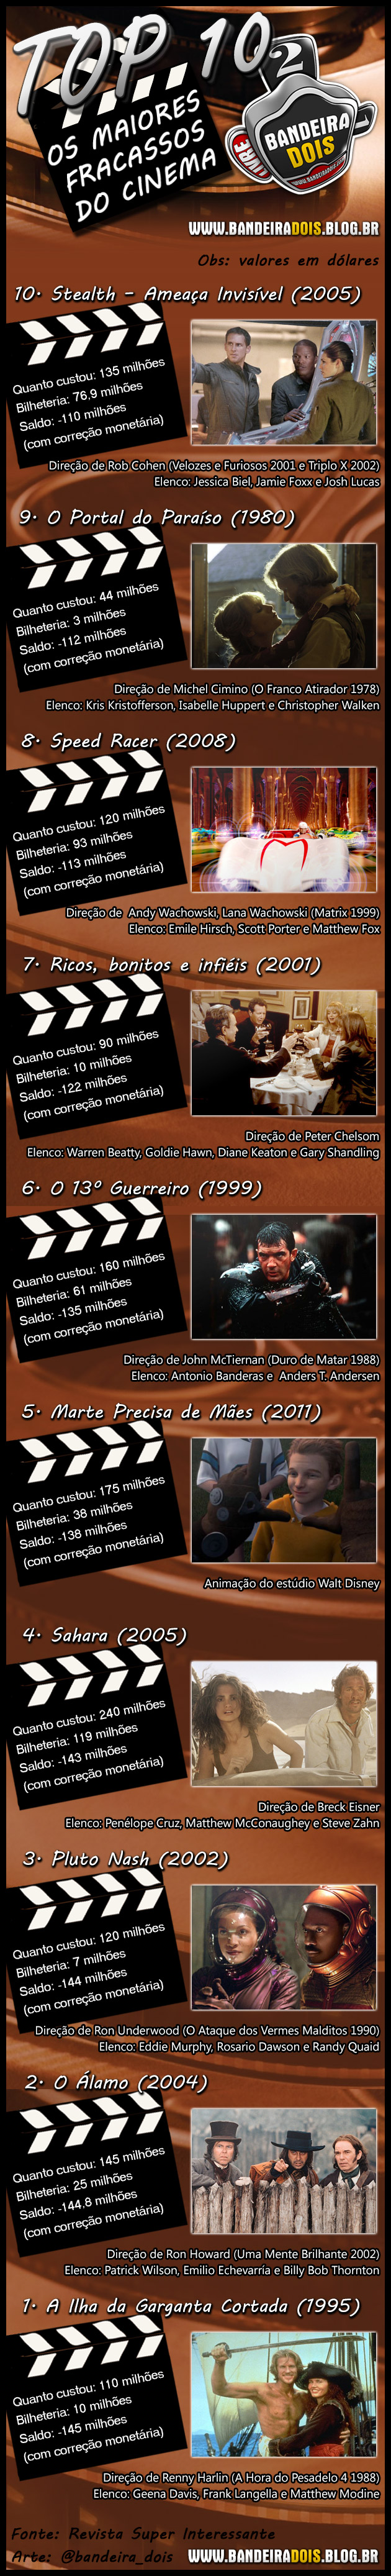 TOP 10 - Os maiores fracassos do cinema